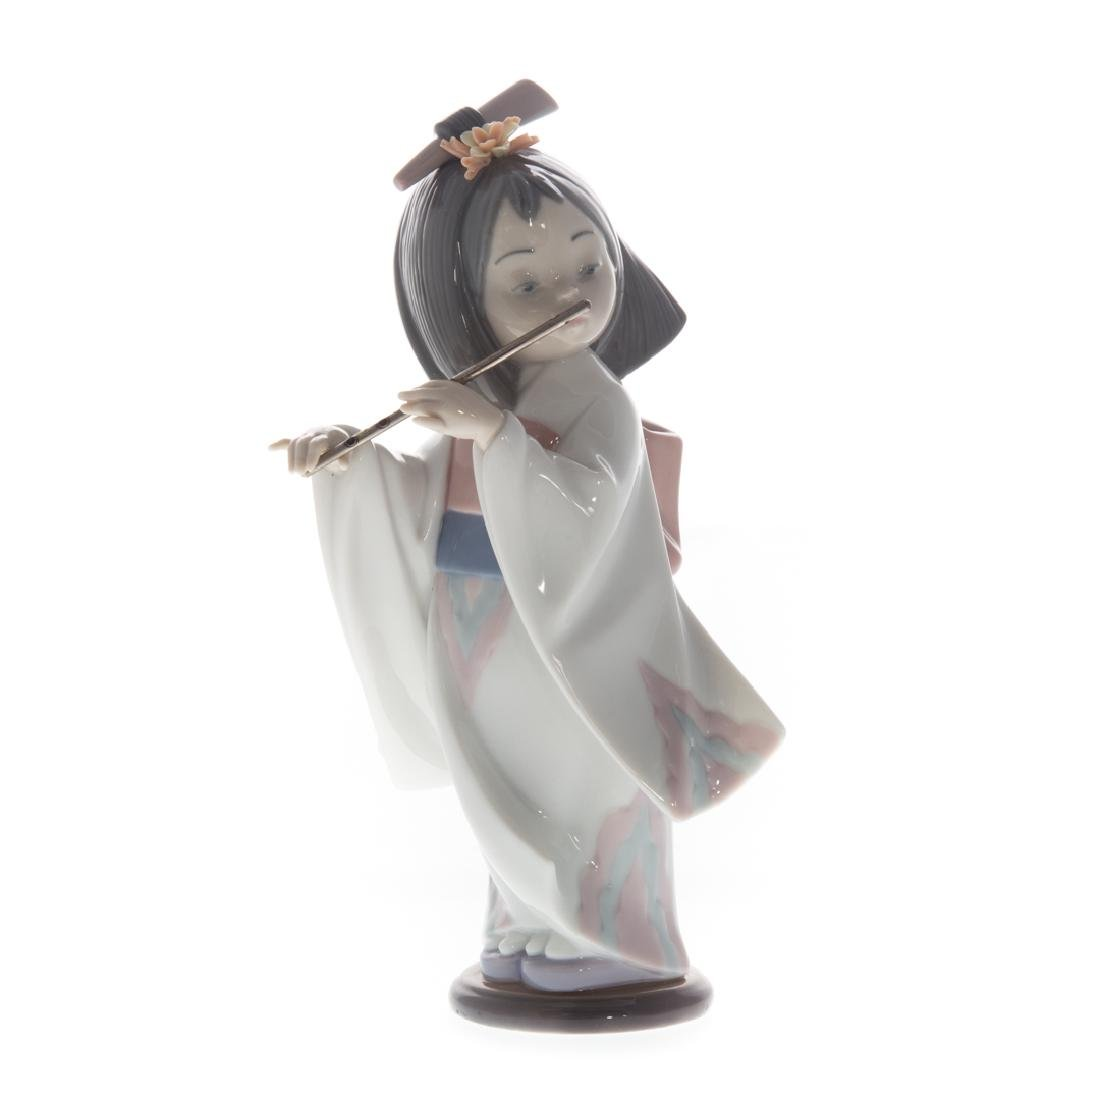 Lladro porcelain figure: Playing the Flute